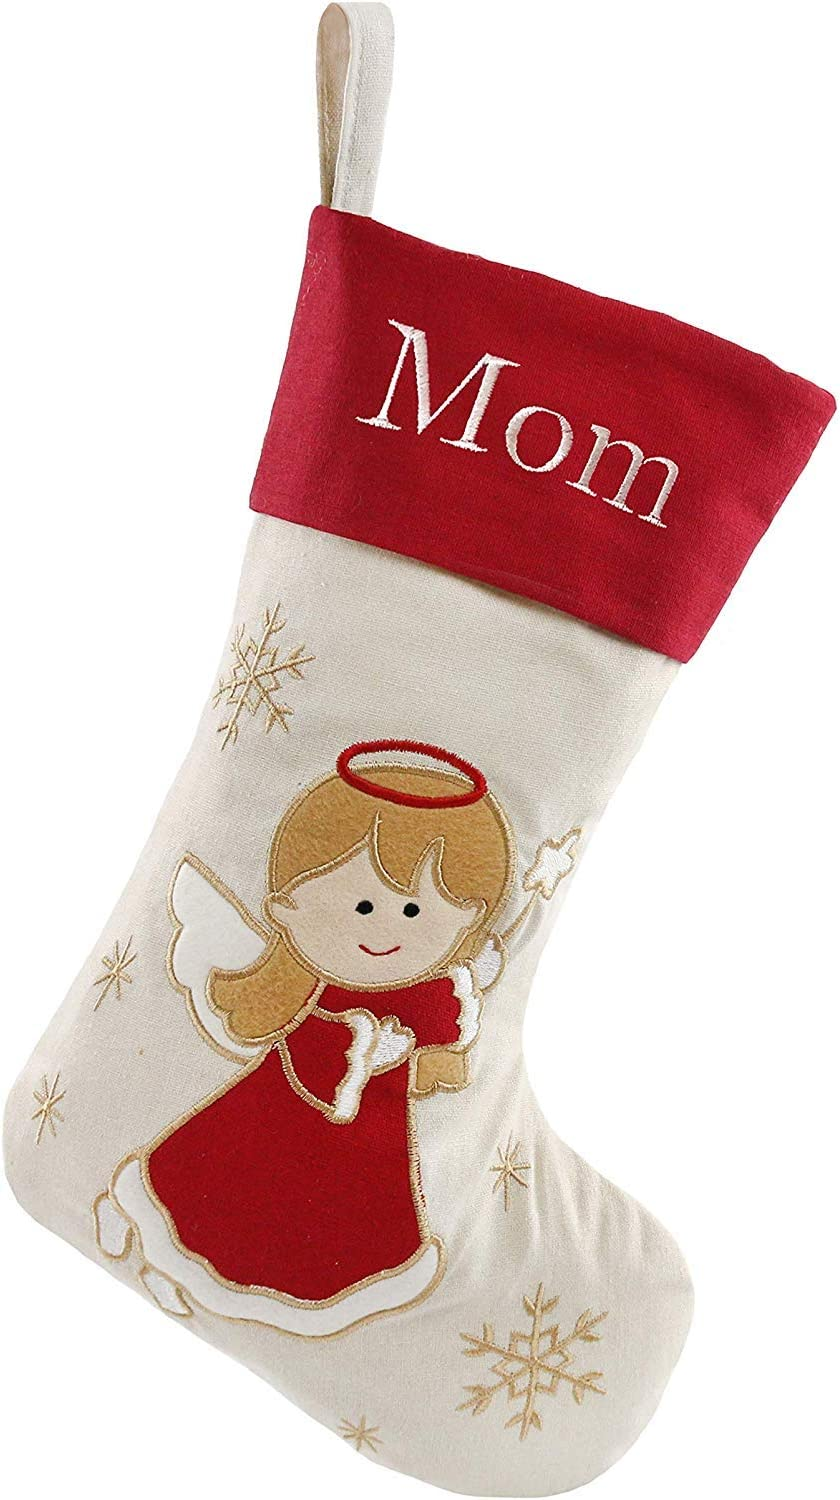 Free Update to Expedited Santa,Snowman,Reindeer,Angel,with Embroidery Technology for Family DearSun Set of 4,18 Personalized Customization Christmas Stockings 4 Design-1